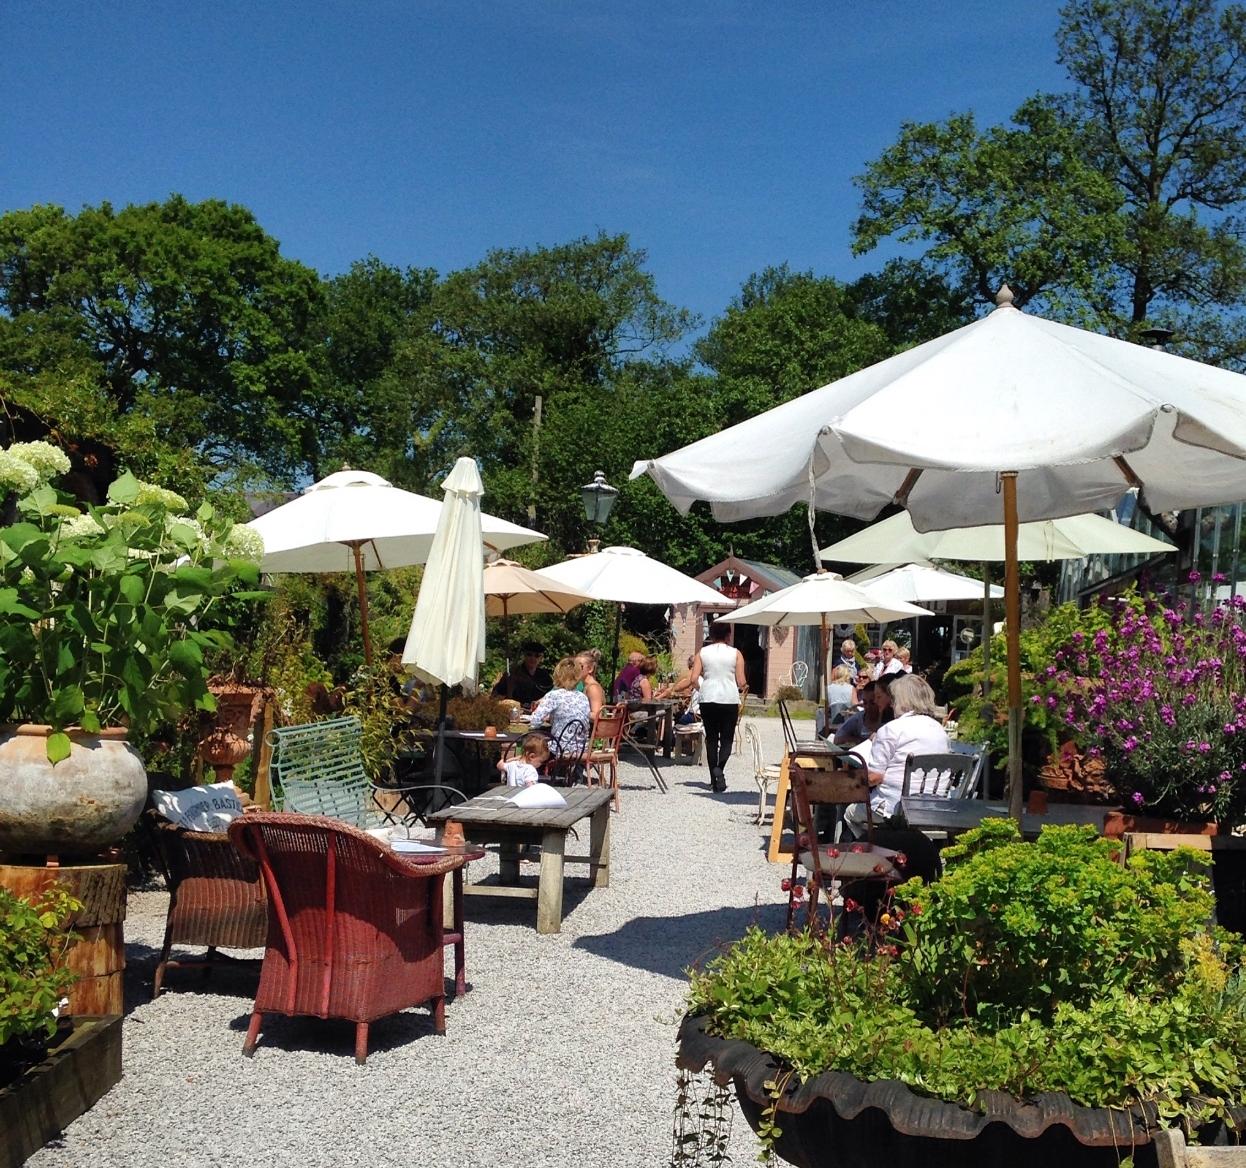 Stydd Gardens,garden Centre,places To Visit In Ribble Valley throughout Garden House Cafe Rochester Menu